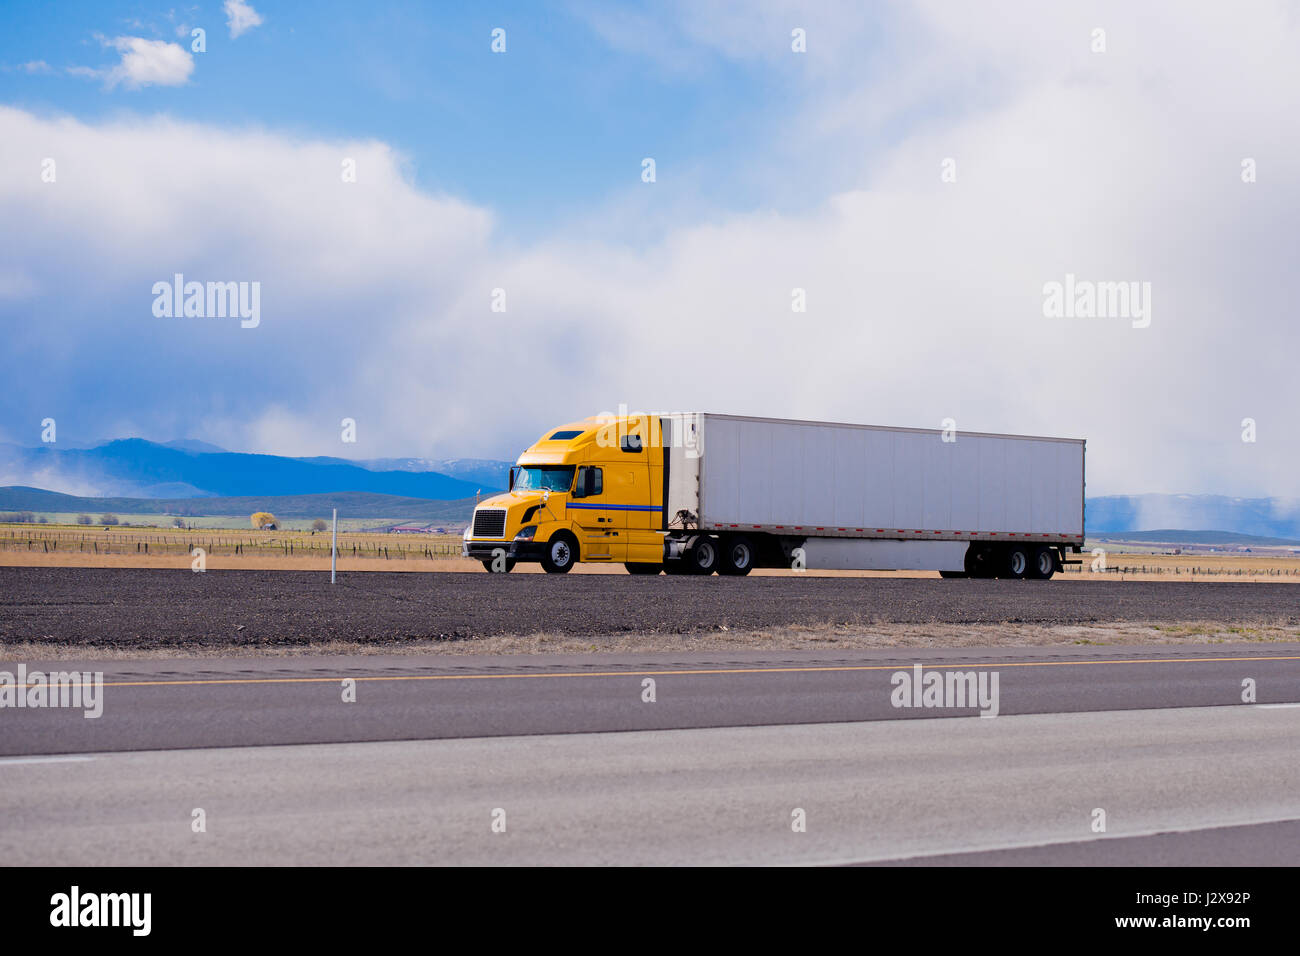 Classic modern semi truck bright yellow color with a white full length trailer aerodynamic skirts on a flat highway - Stock Image